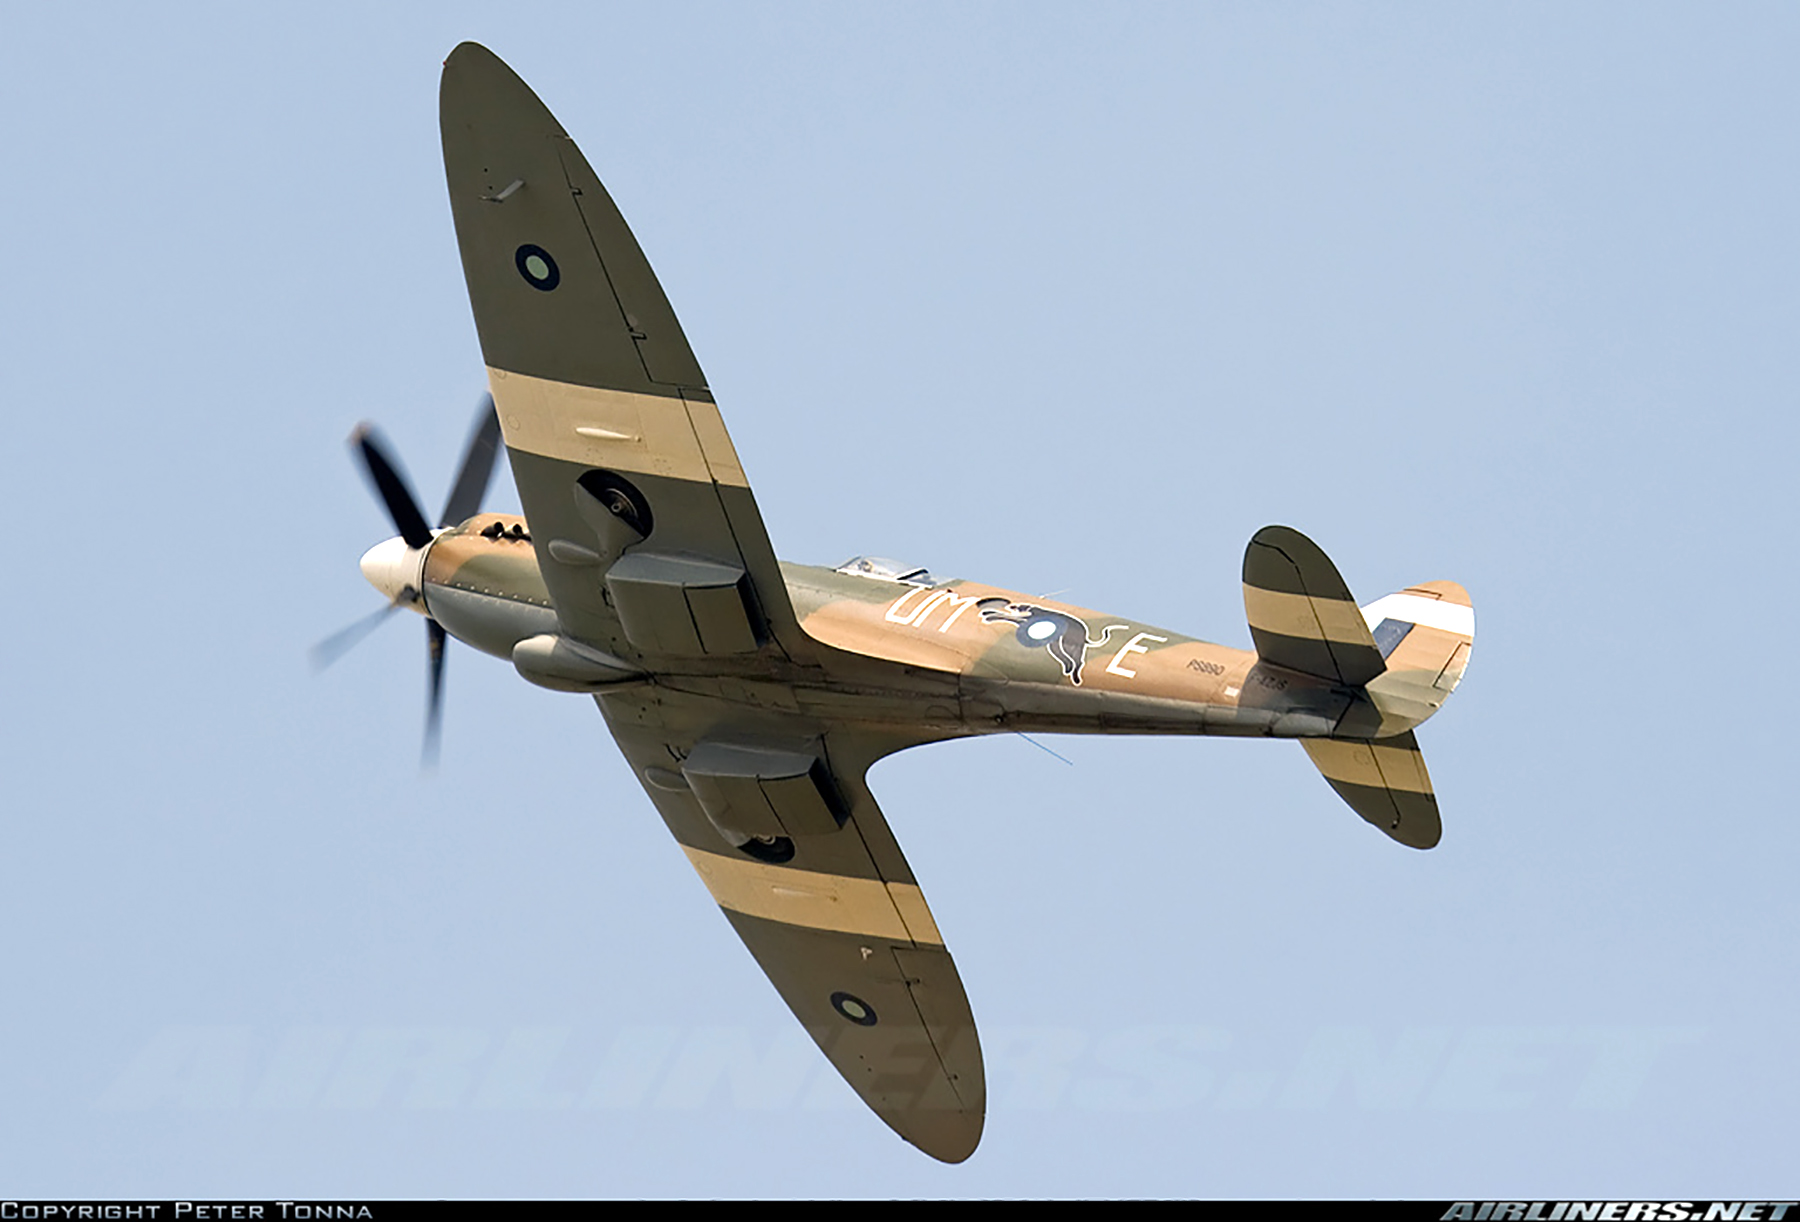 Airworthy Spitfire warbird PR19 PS890 as RAF 152Sqn UME 11